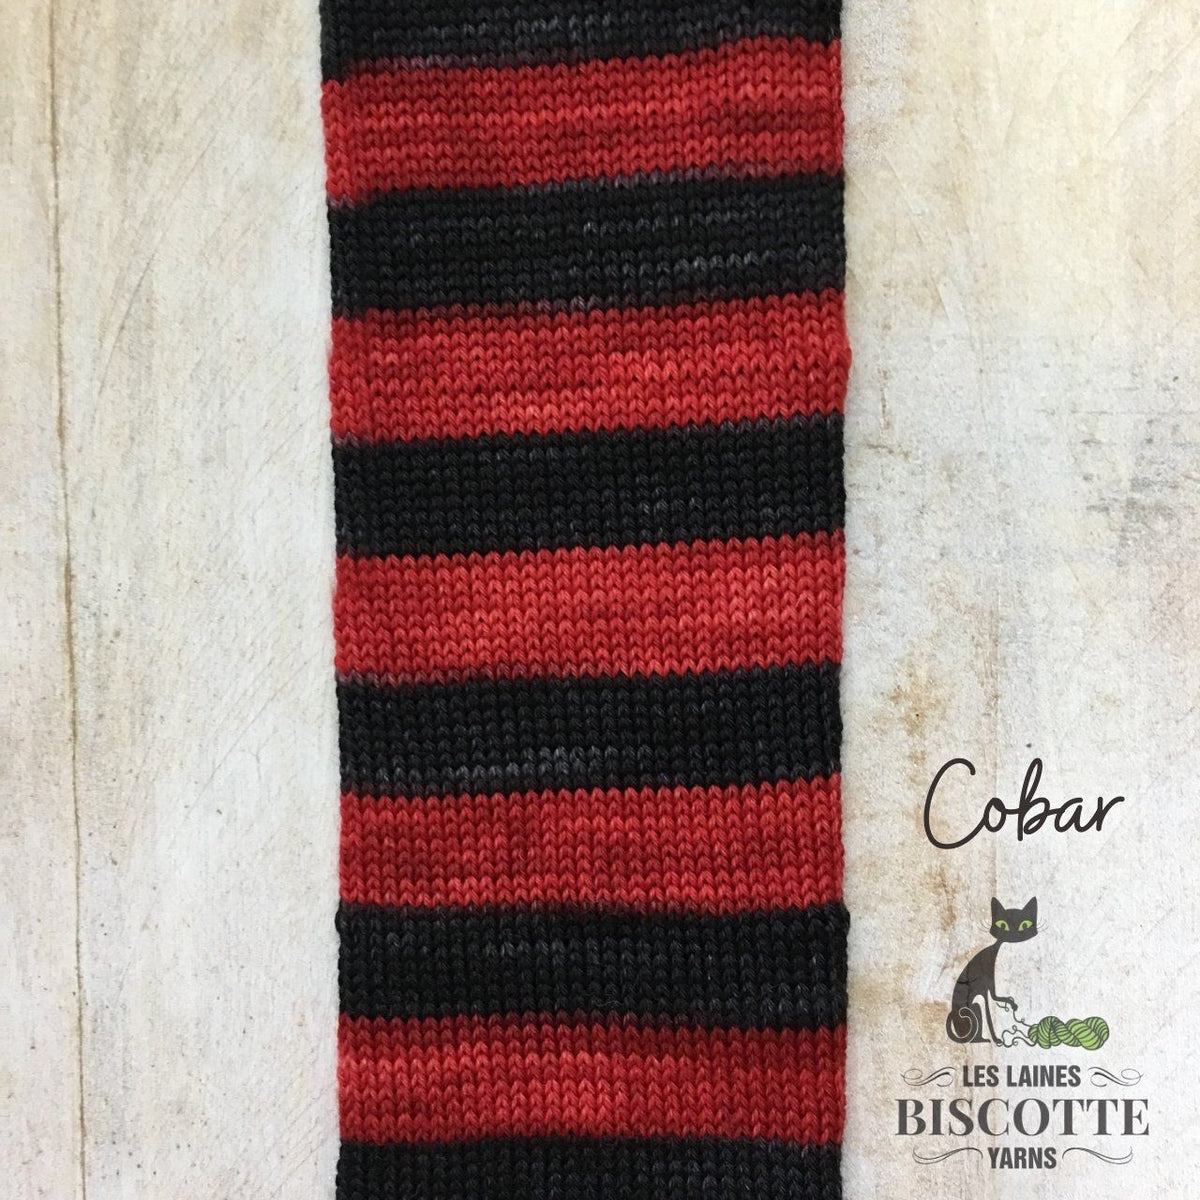 Bis-sock yarn Cobar self-striping hand-dyed yarn